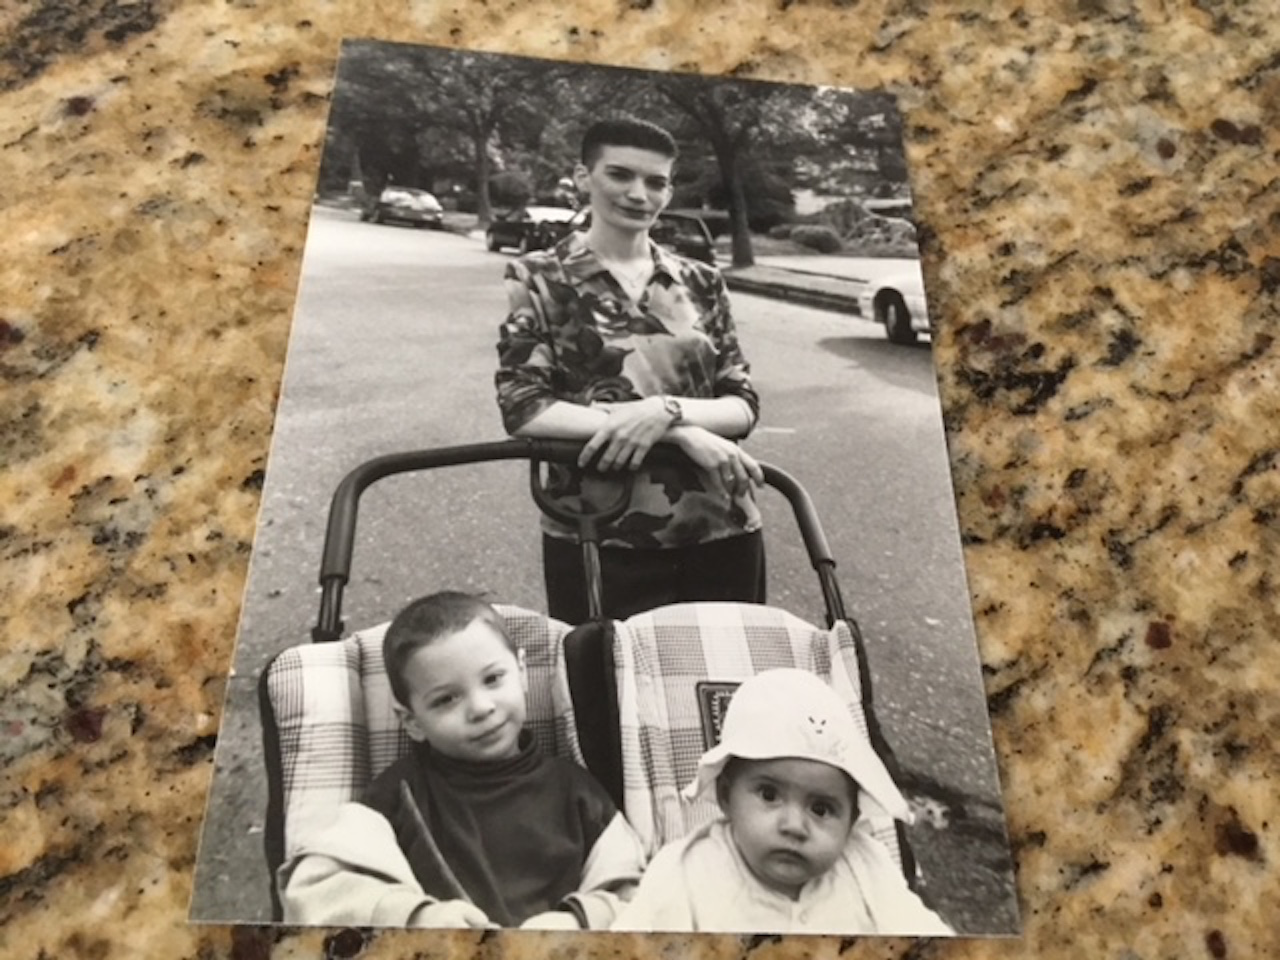 A photo of the writer and her two kids in the stroller.